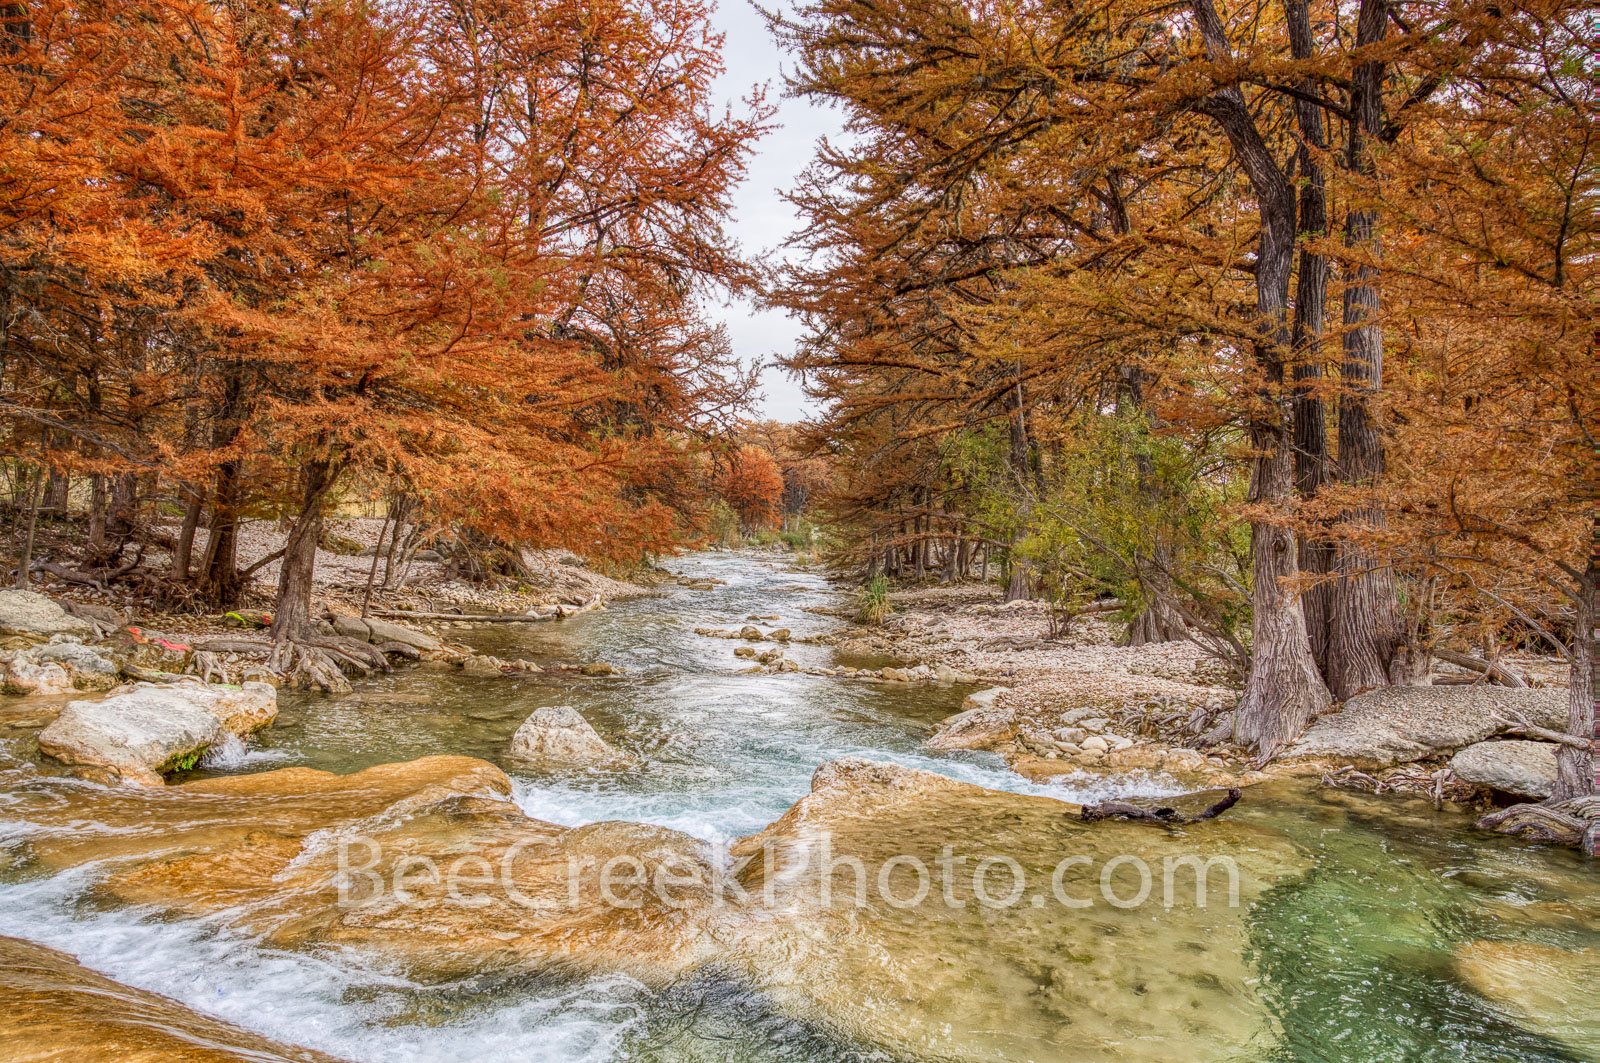 fall, river, frio river, rocky, downstream, texas hill country, hill country, autumn, emerald water, flowing, cypress, bald cypress trees, orange, rusty red, fall scenery, autumn scenery, scenic, path, photo